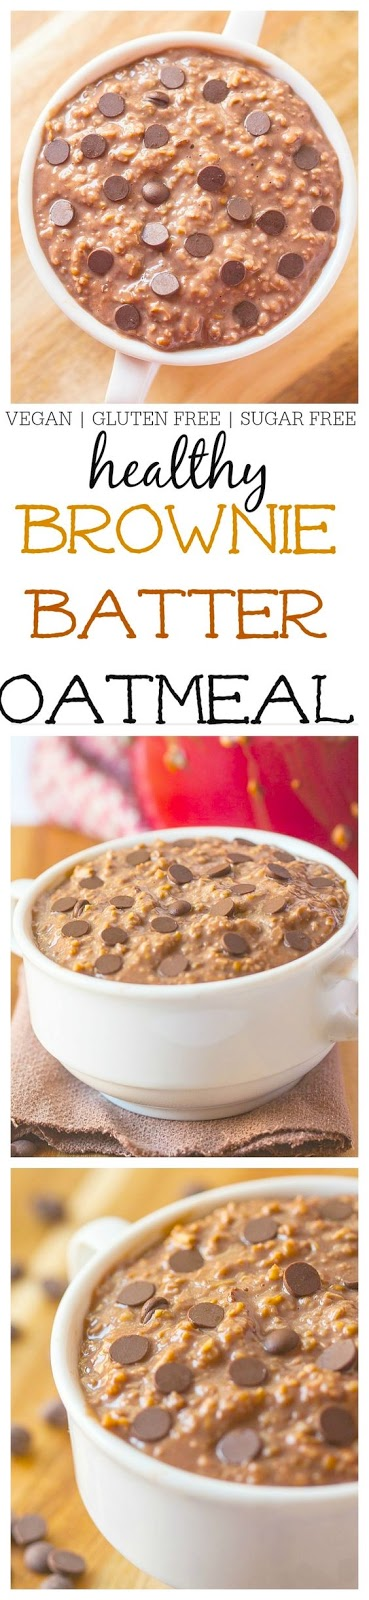 Vegan Brownie Batter Oatmeal Recipe (Vegan, Gluten Free)